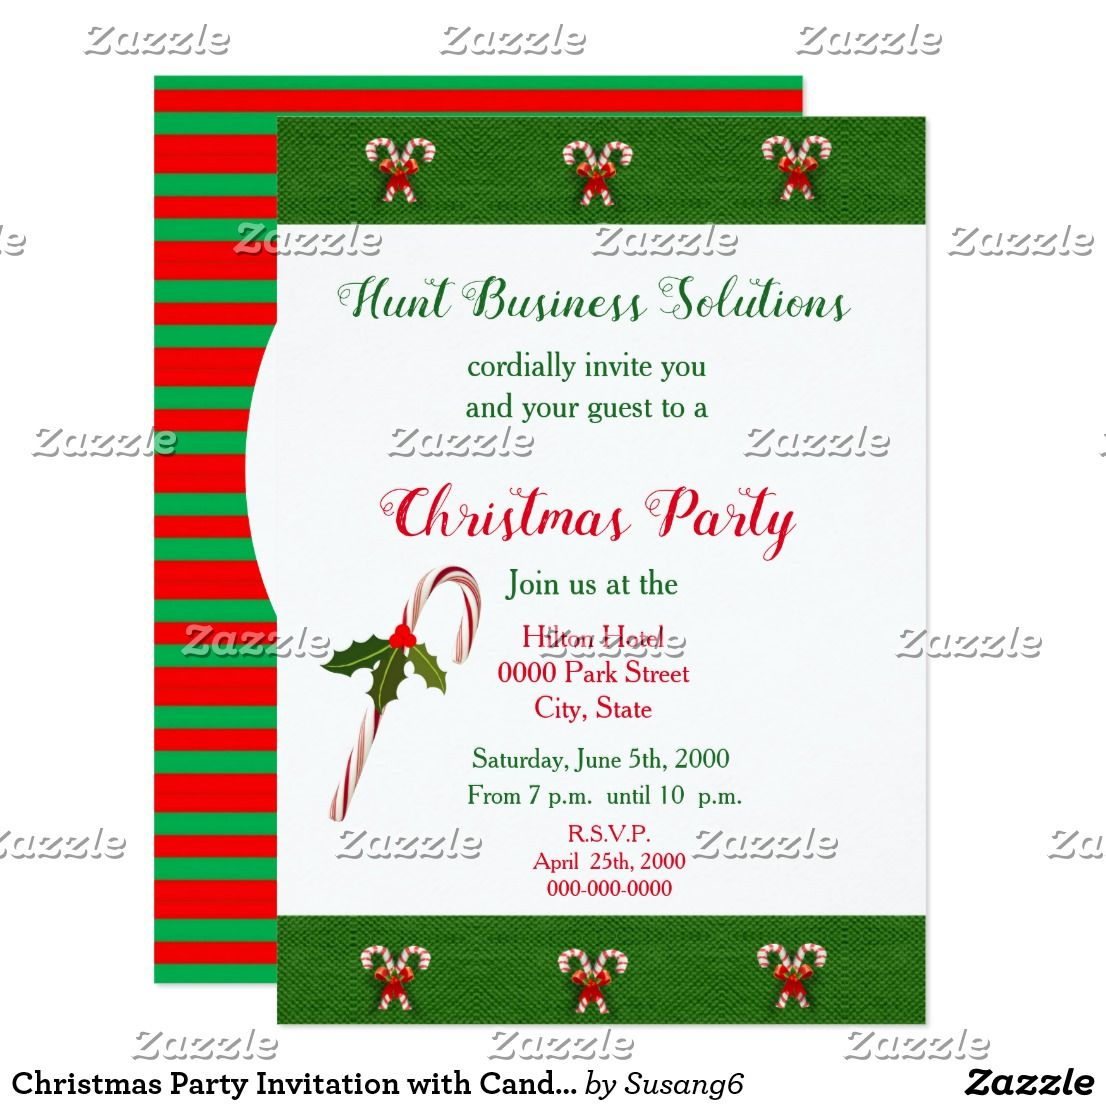 Christmas Party Invitation with Candy Cane Design | Corporate,Office ...